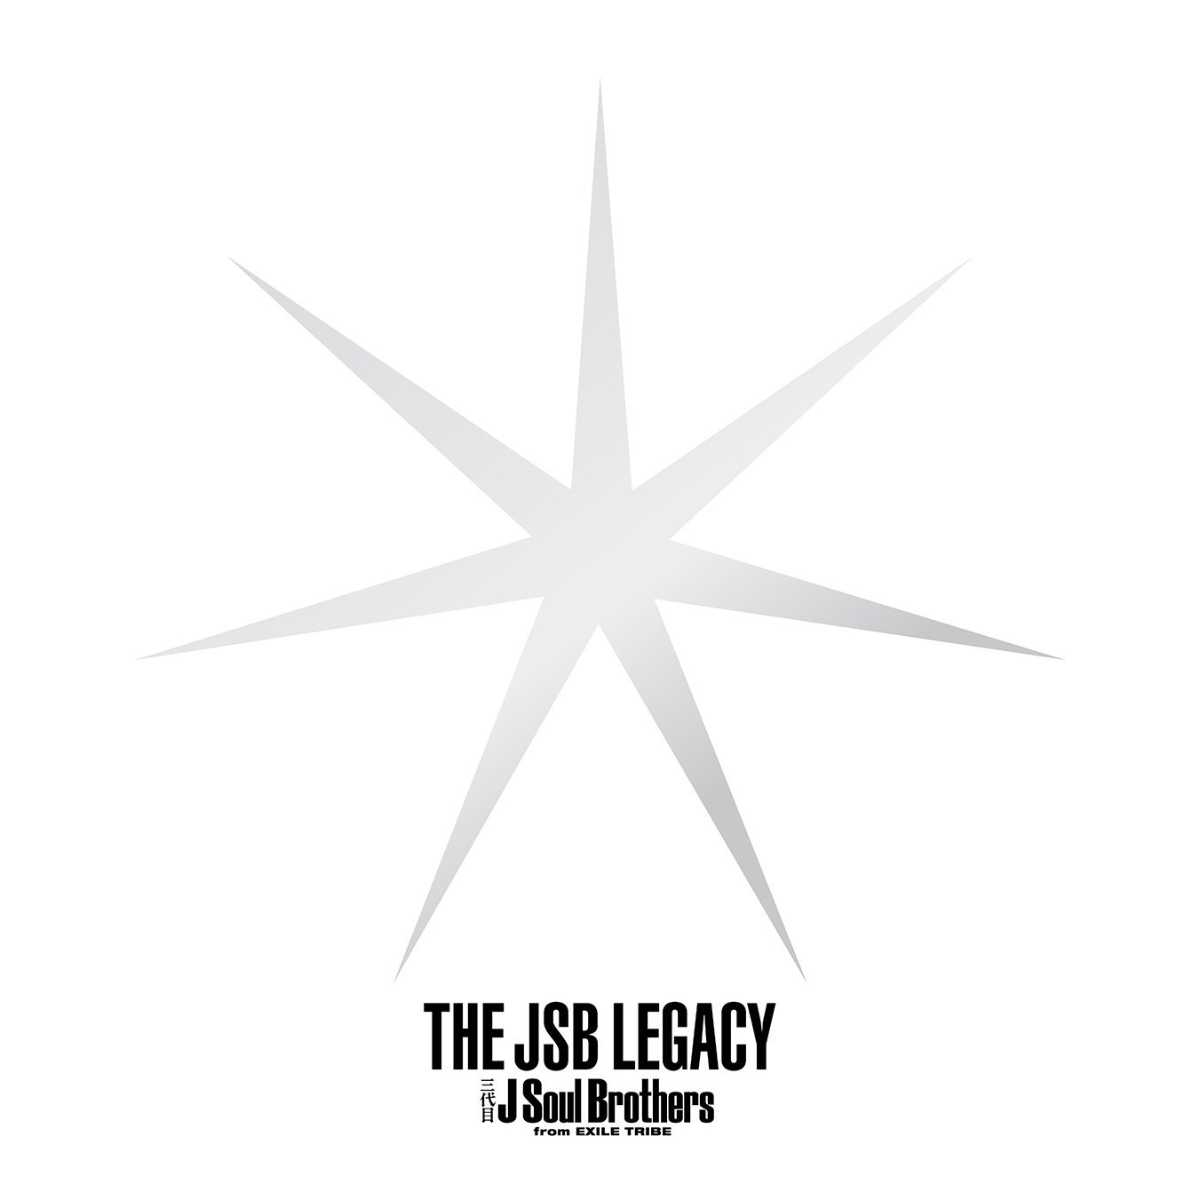 【B2ポスターカレンダー付】THEJSBLEGACY(通常盤)[三代目JSoulBrothersfromEXILETRIBE]